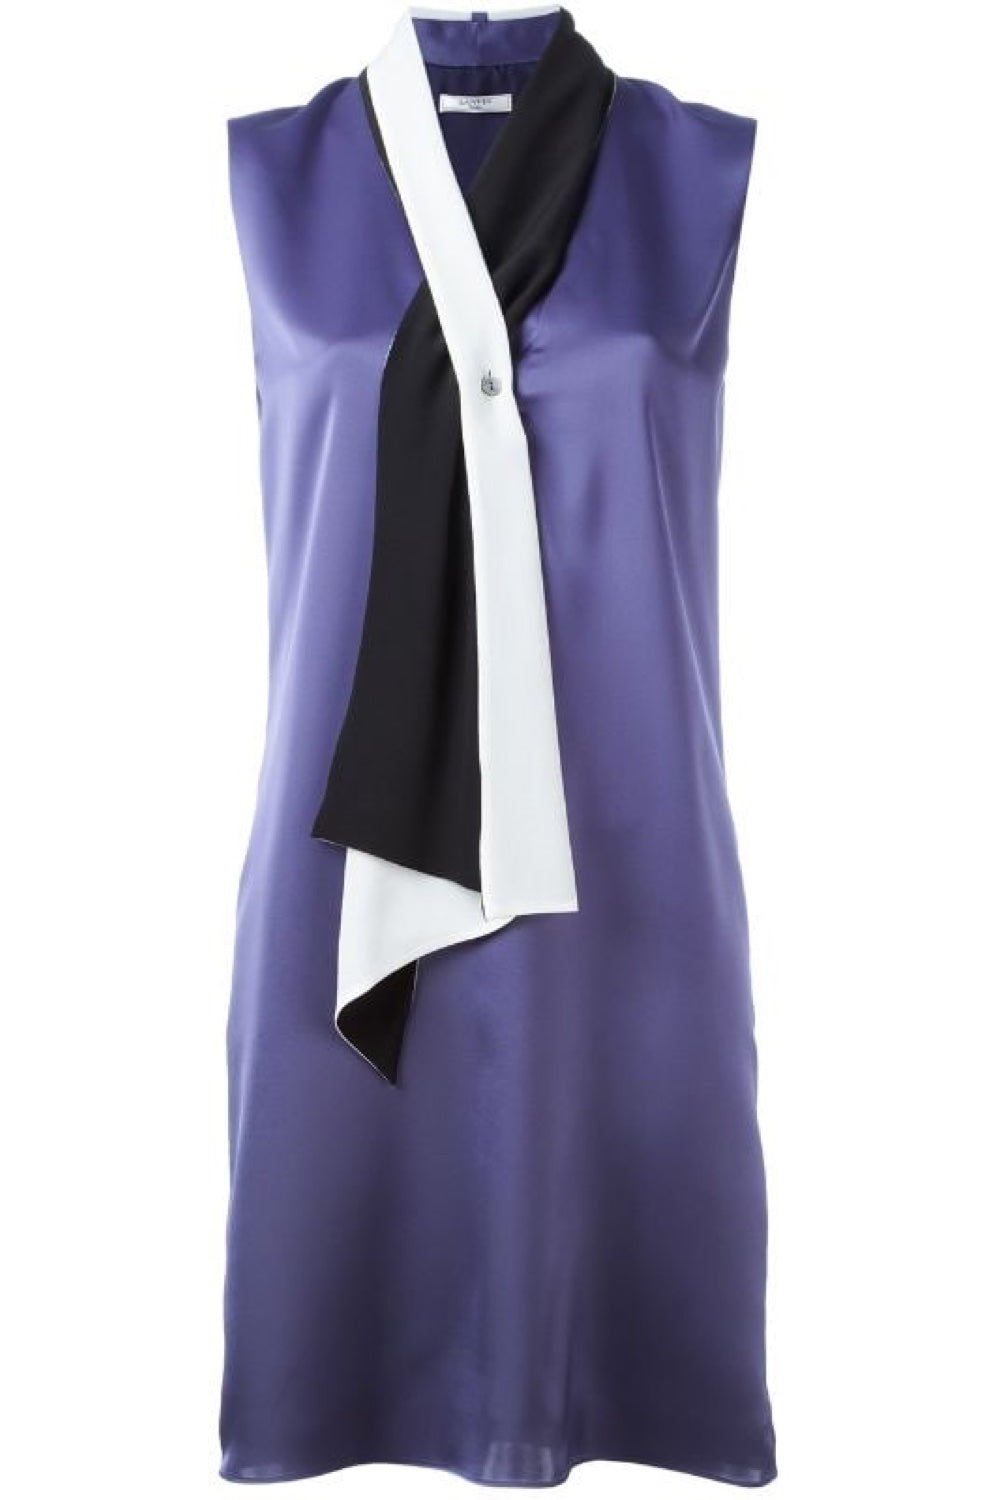 Scarf Neckline Satin Dress - The Bobby Boga